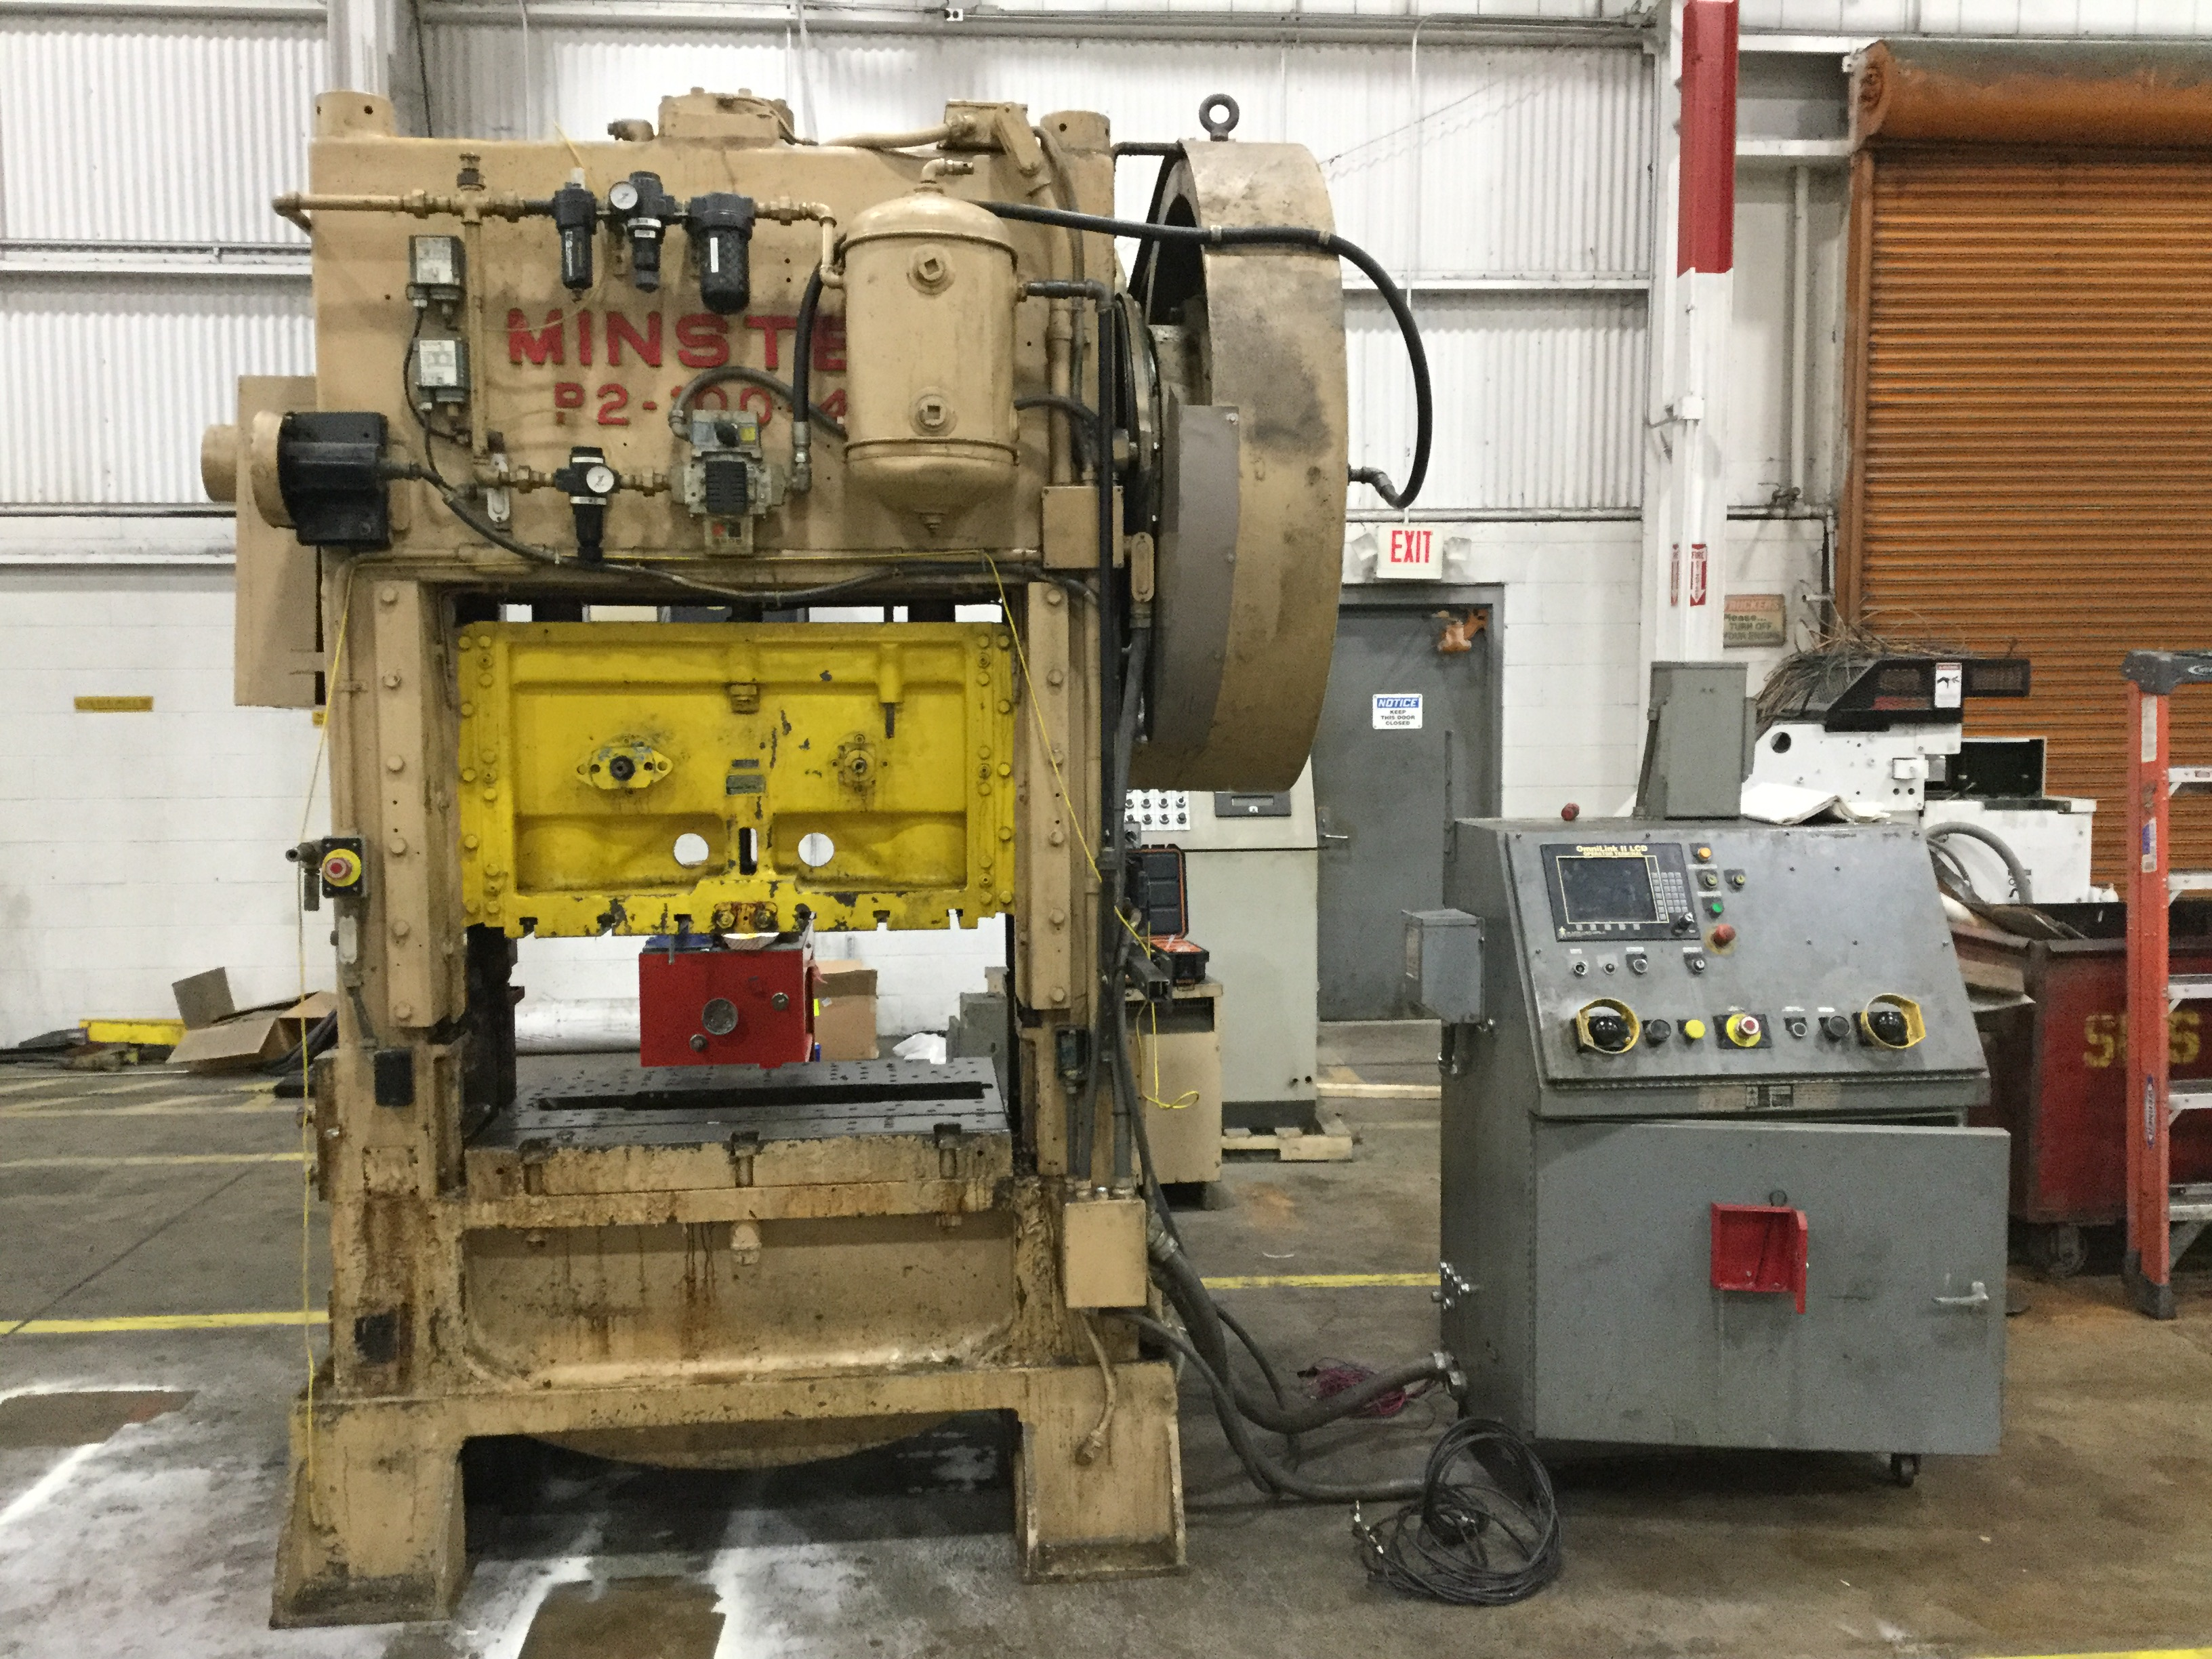 100 TON MINSTER P2-100 STRAIGHT SIDE PRESS